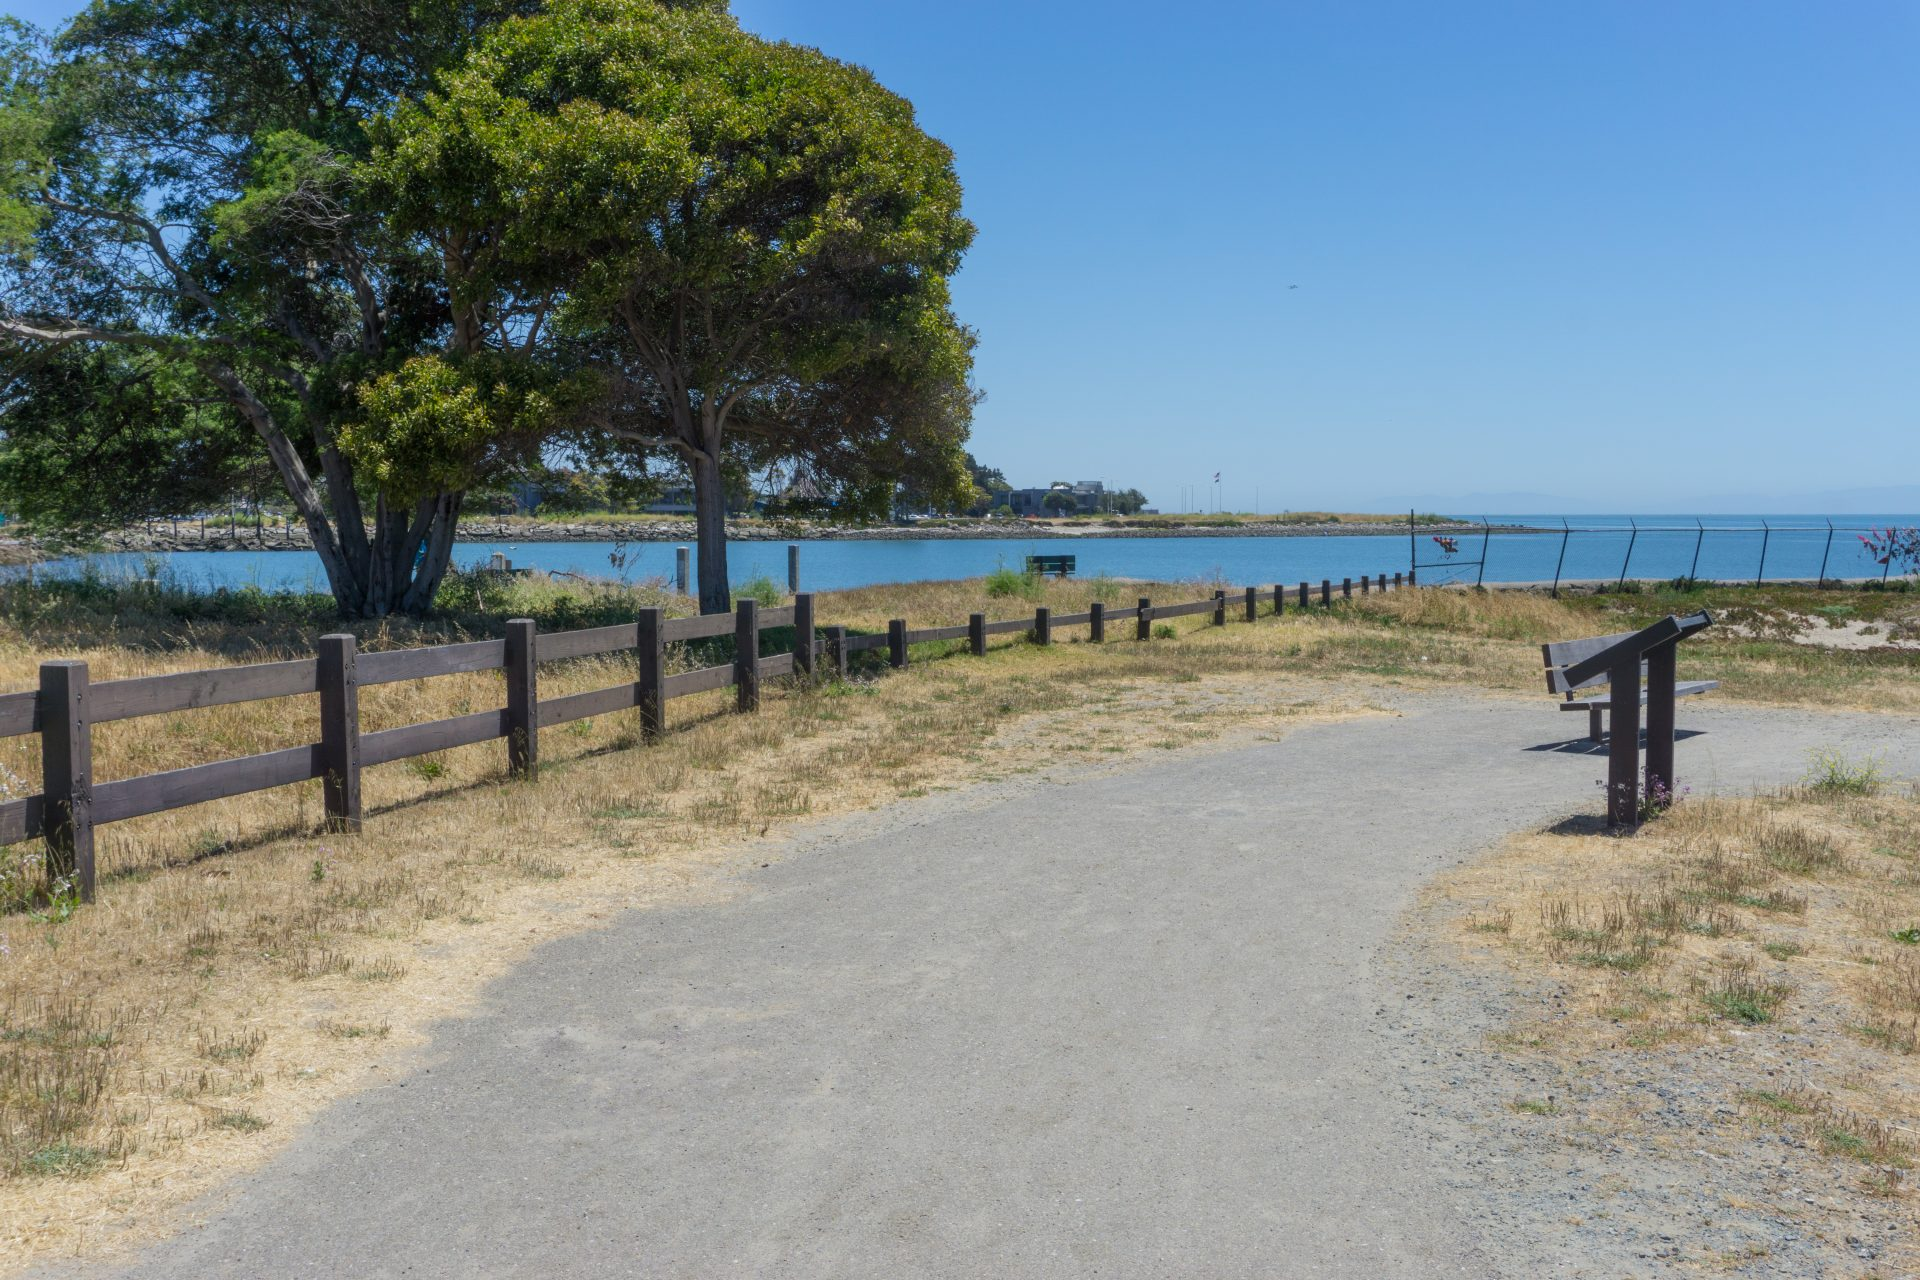 gravel path curving to right. Trees on left, bay in distance